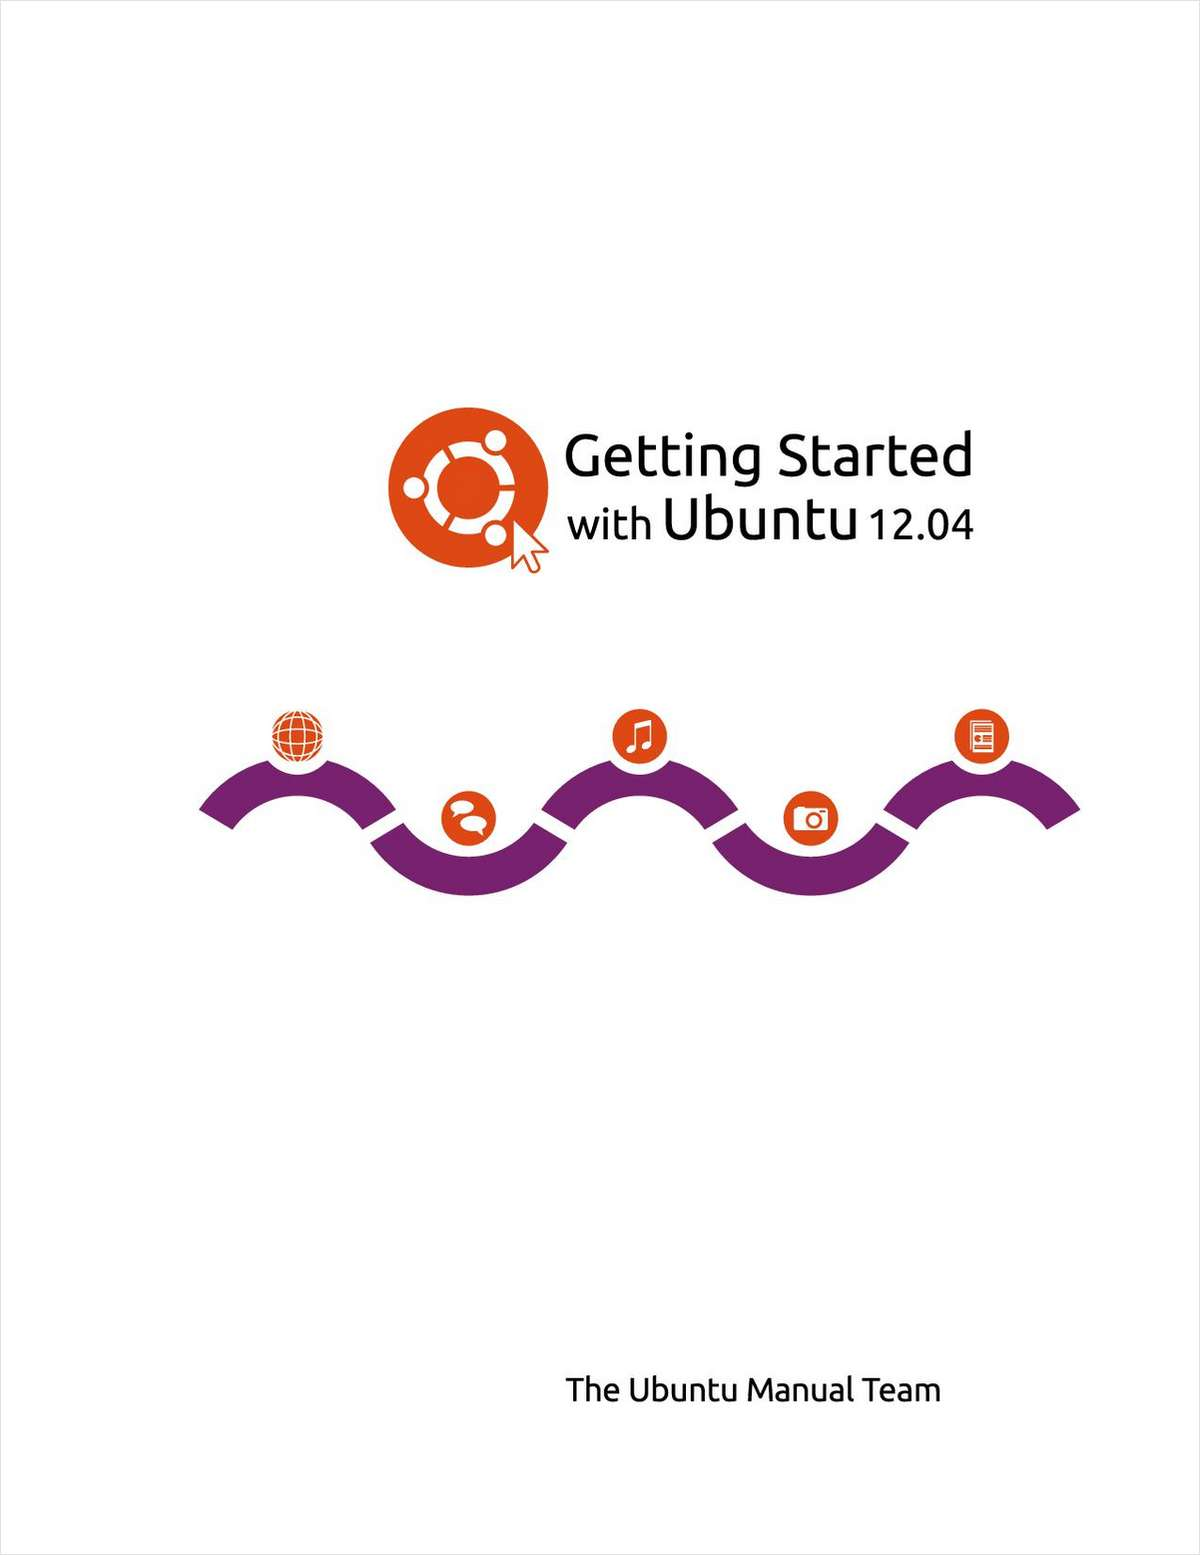 Getting Started with Ubuntu 12.04